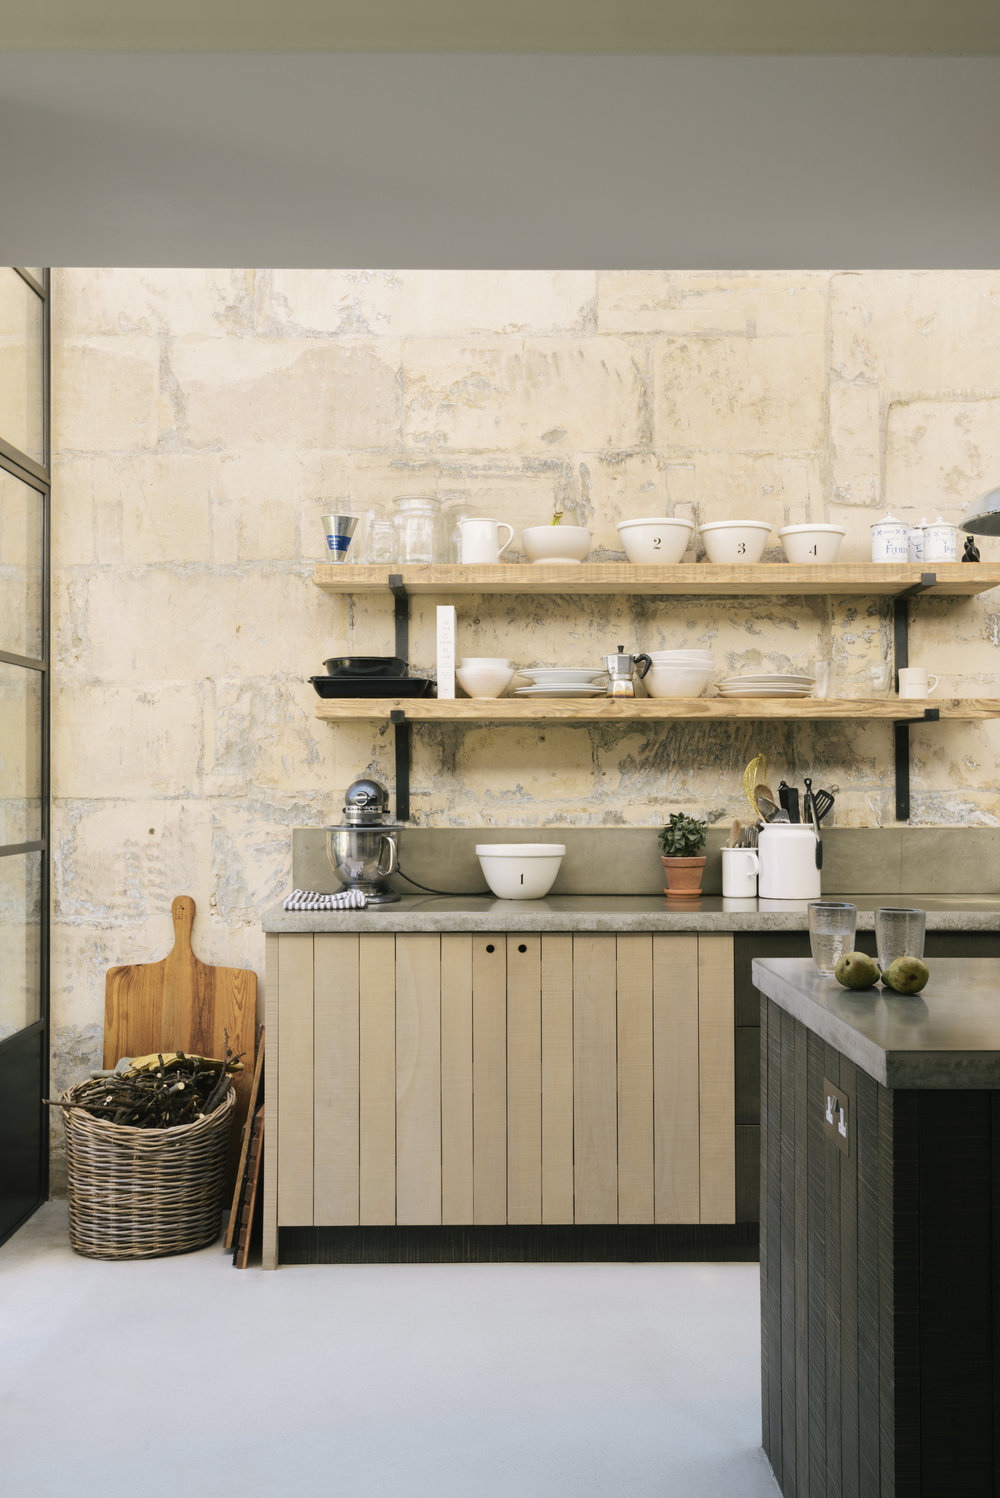 LIV for Interiors / Modern Rustic deVOL Kitchen